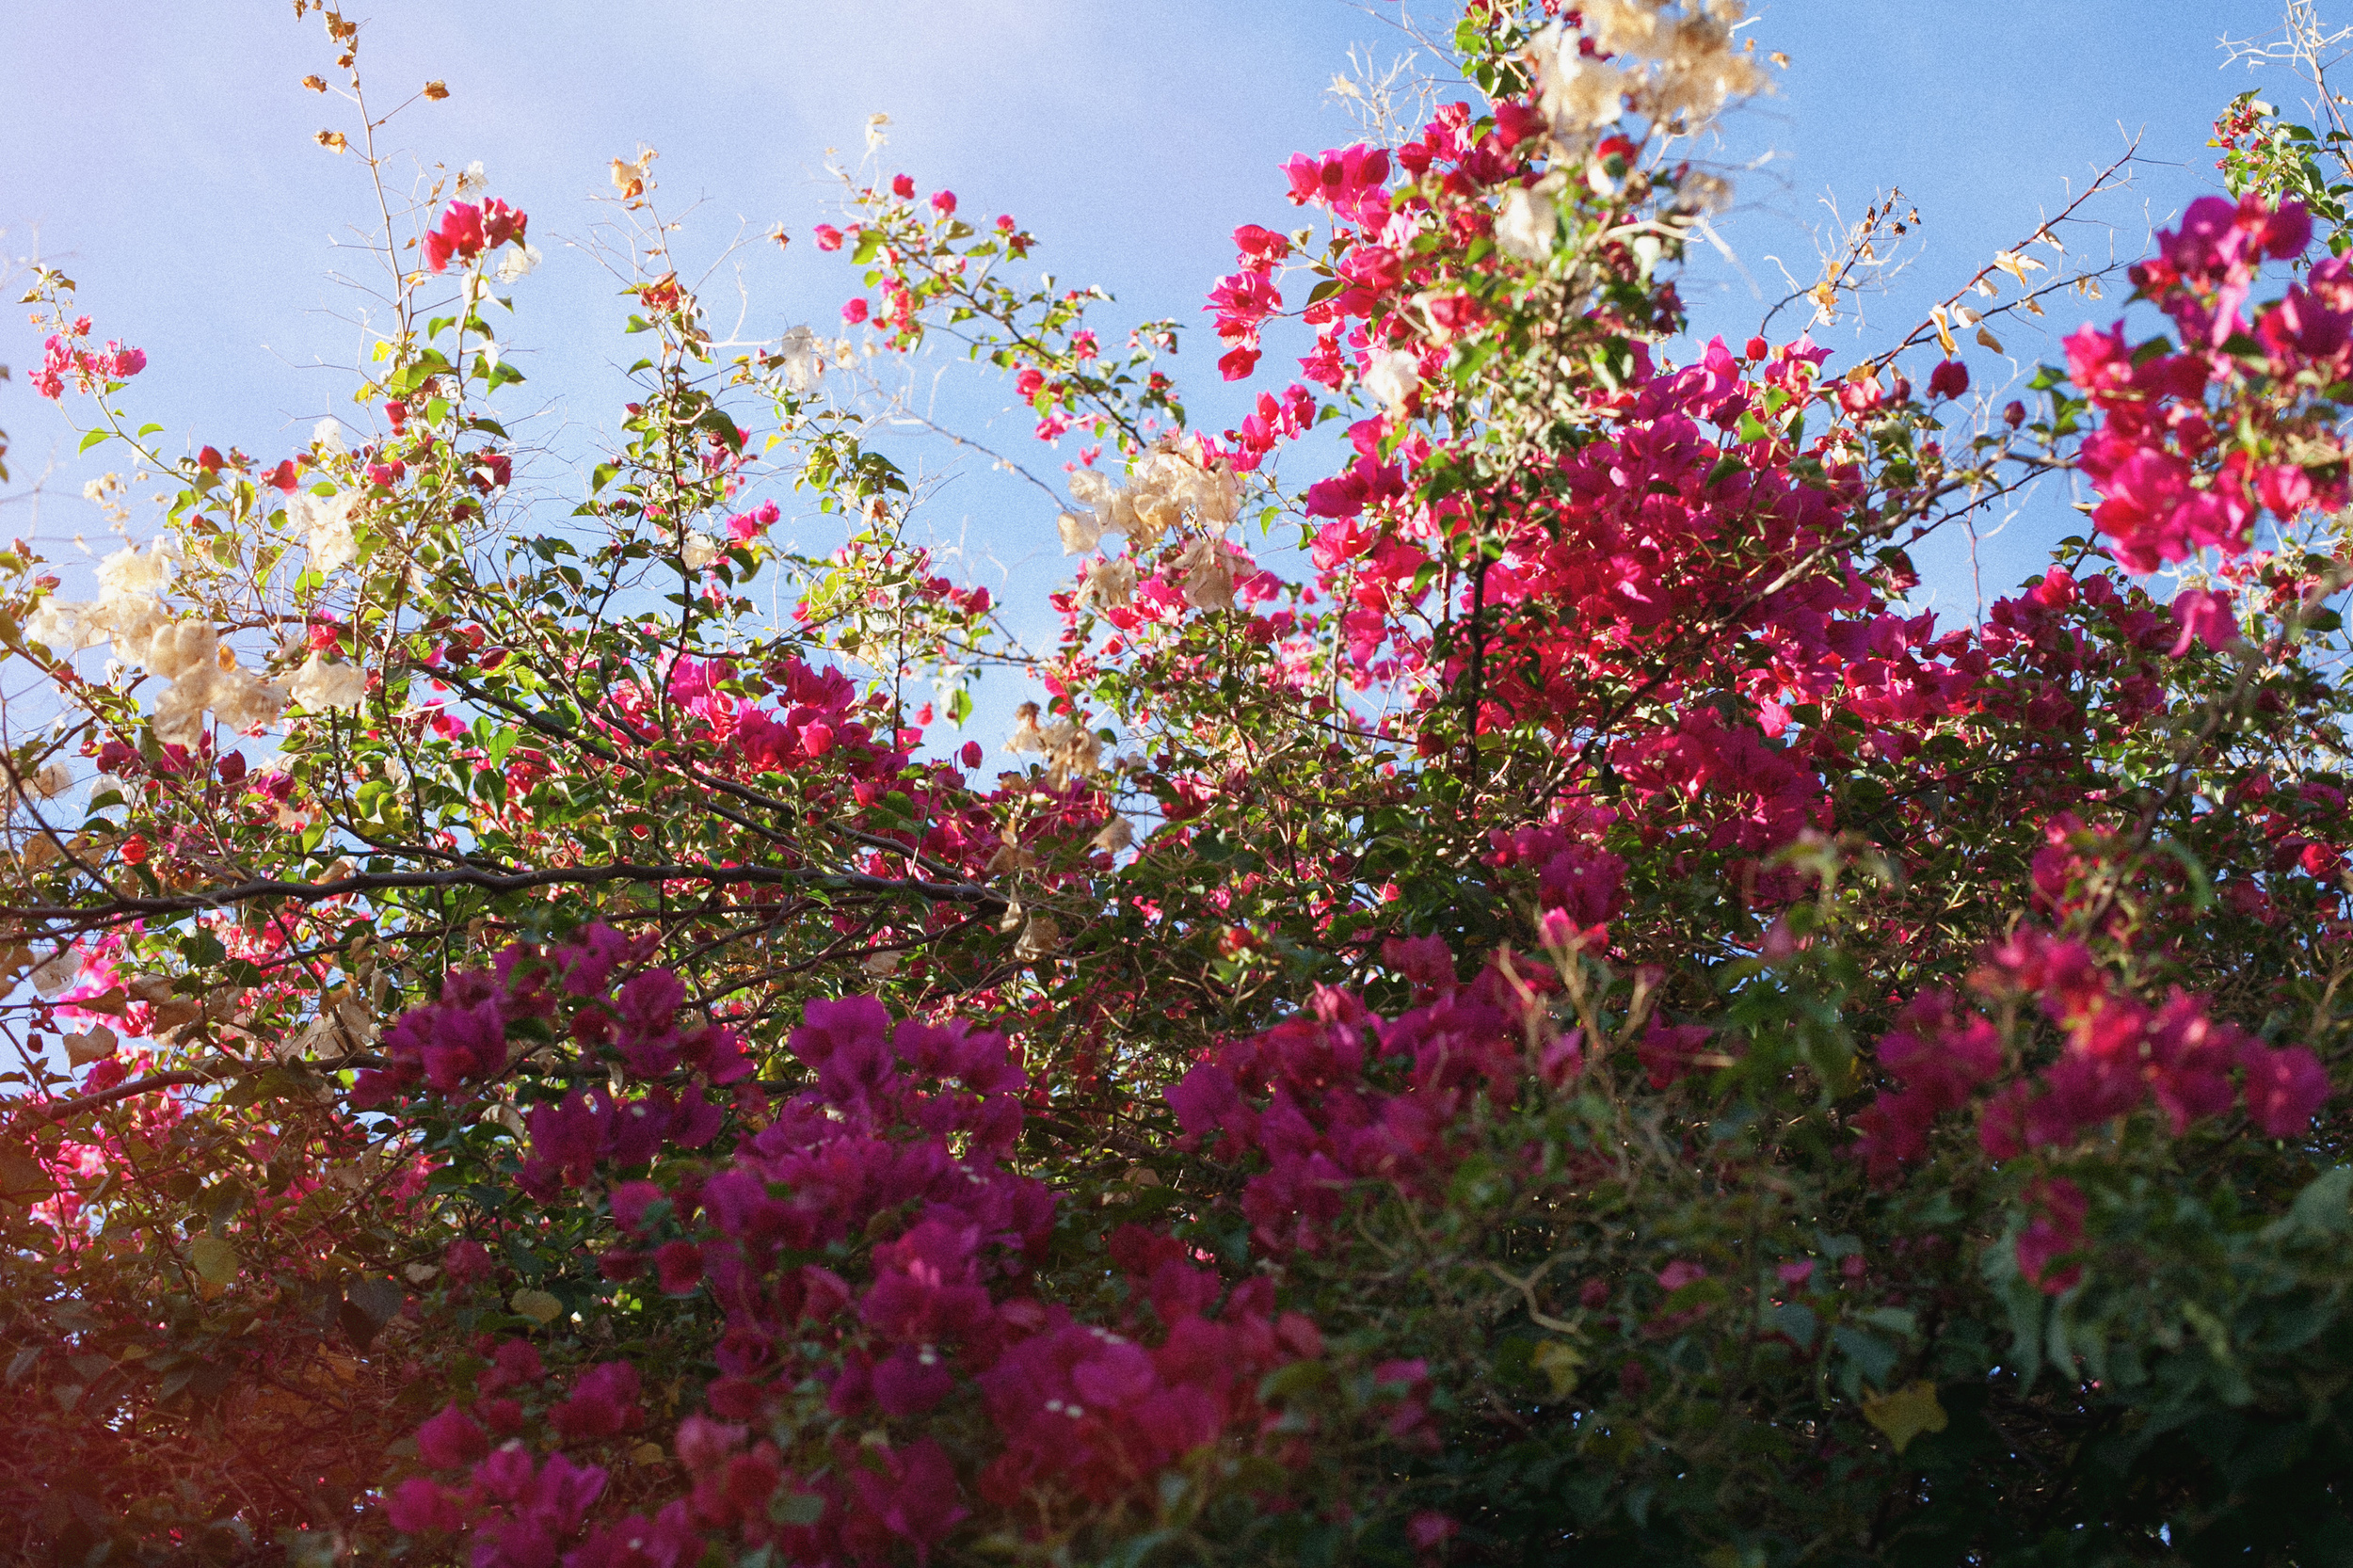 Bouganvilla Flowers in Palm Springs by Naomi Yamada